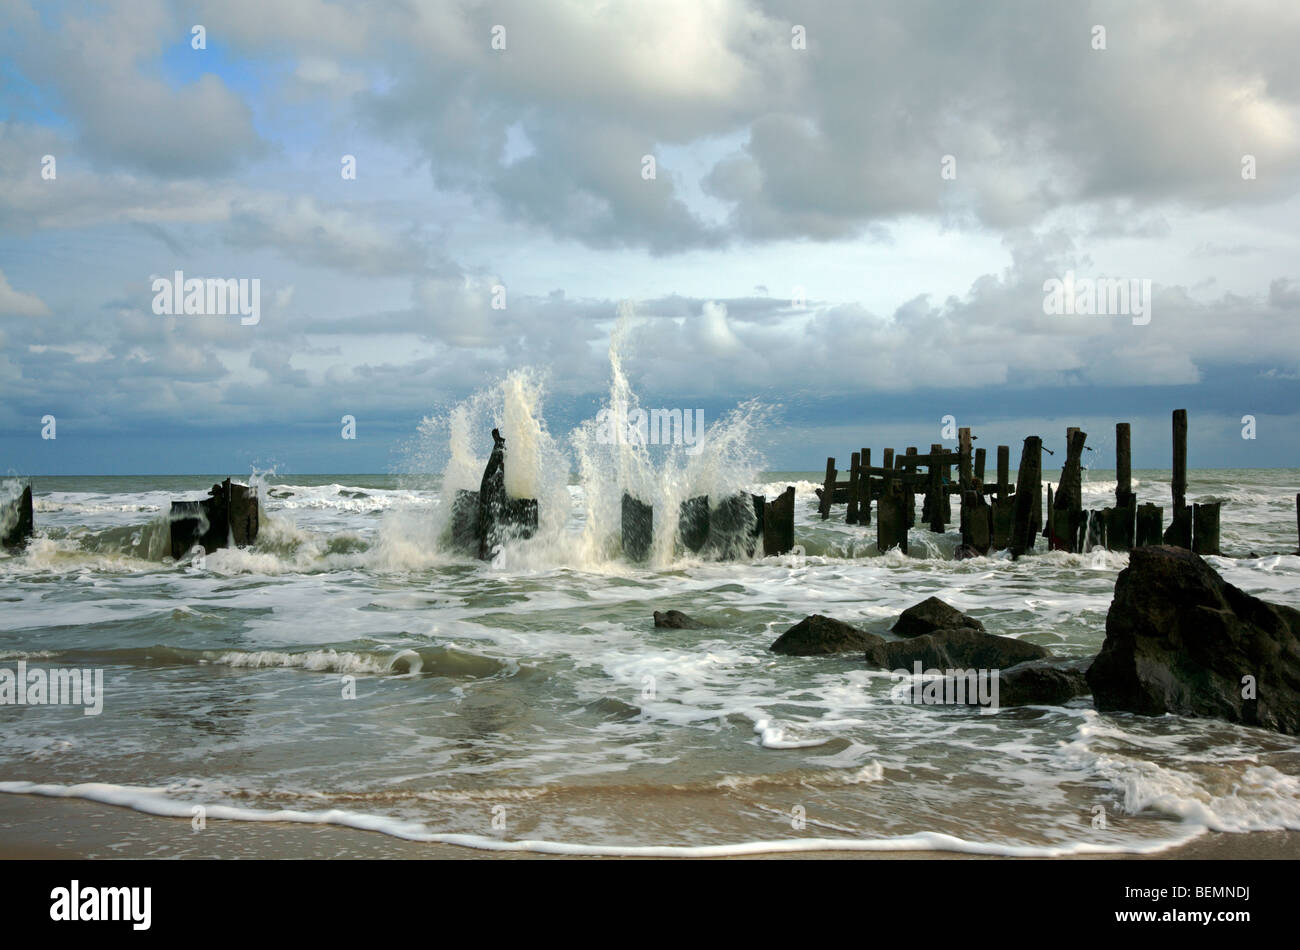 Old breakwaters at Happisburgh, Norfolk, United Kingdom, being pounded by waves. - Stock Image